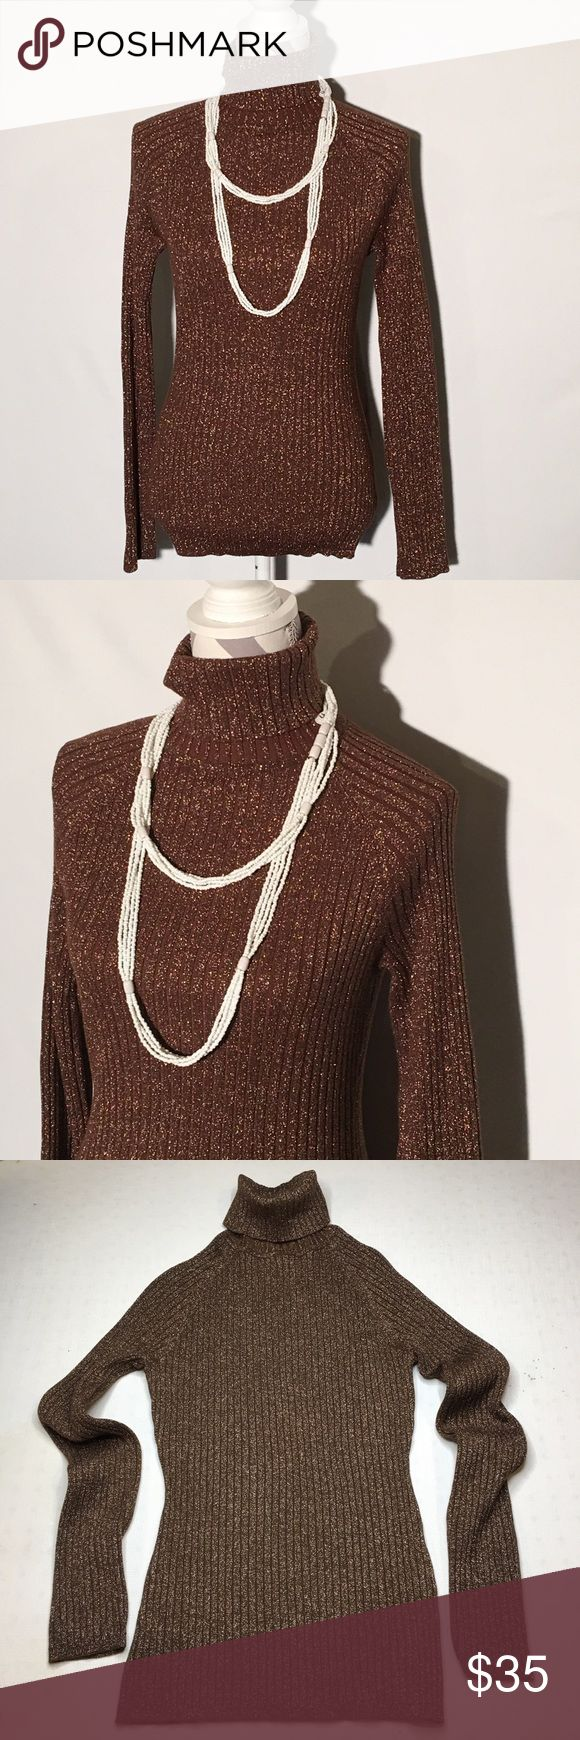 INC Brown sparkle women's turtleneck sweater INC, Size is large  61% Rayon,15% Polyester, 7% Nylon, 17% Metallic, 7% Spandex, Pretty brown Color & Small Tiny Gold Sparkles Sweater, The Color is More Gold  in Real Life,  In Excellent Condition. Only worn once. INC International Concepts Sweaters Cowl & Turtlenecks